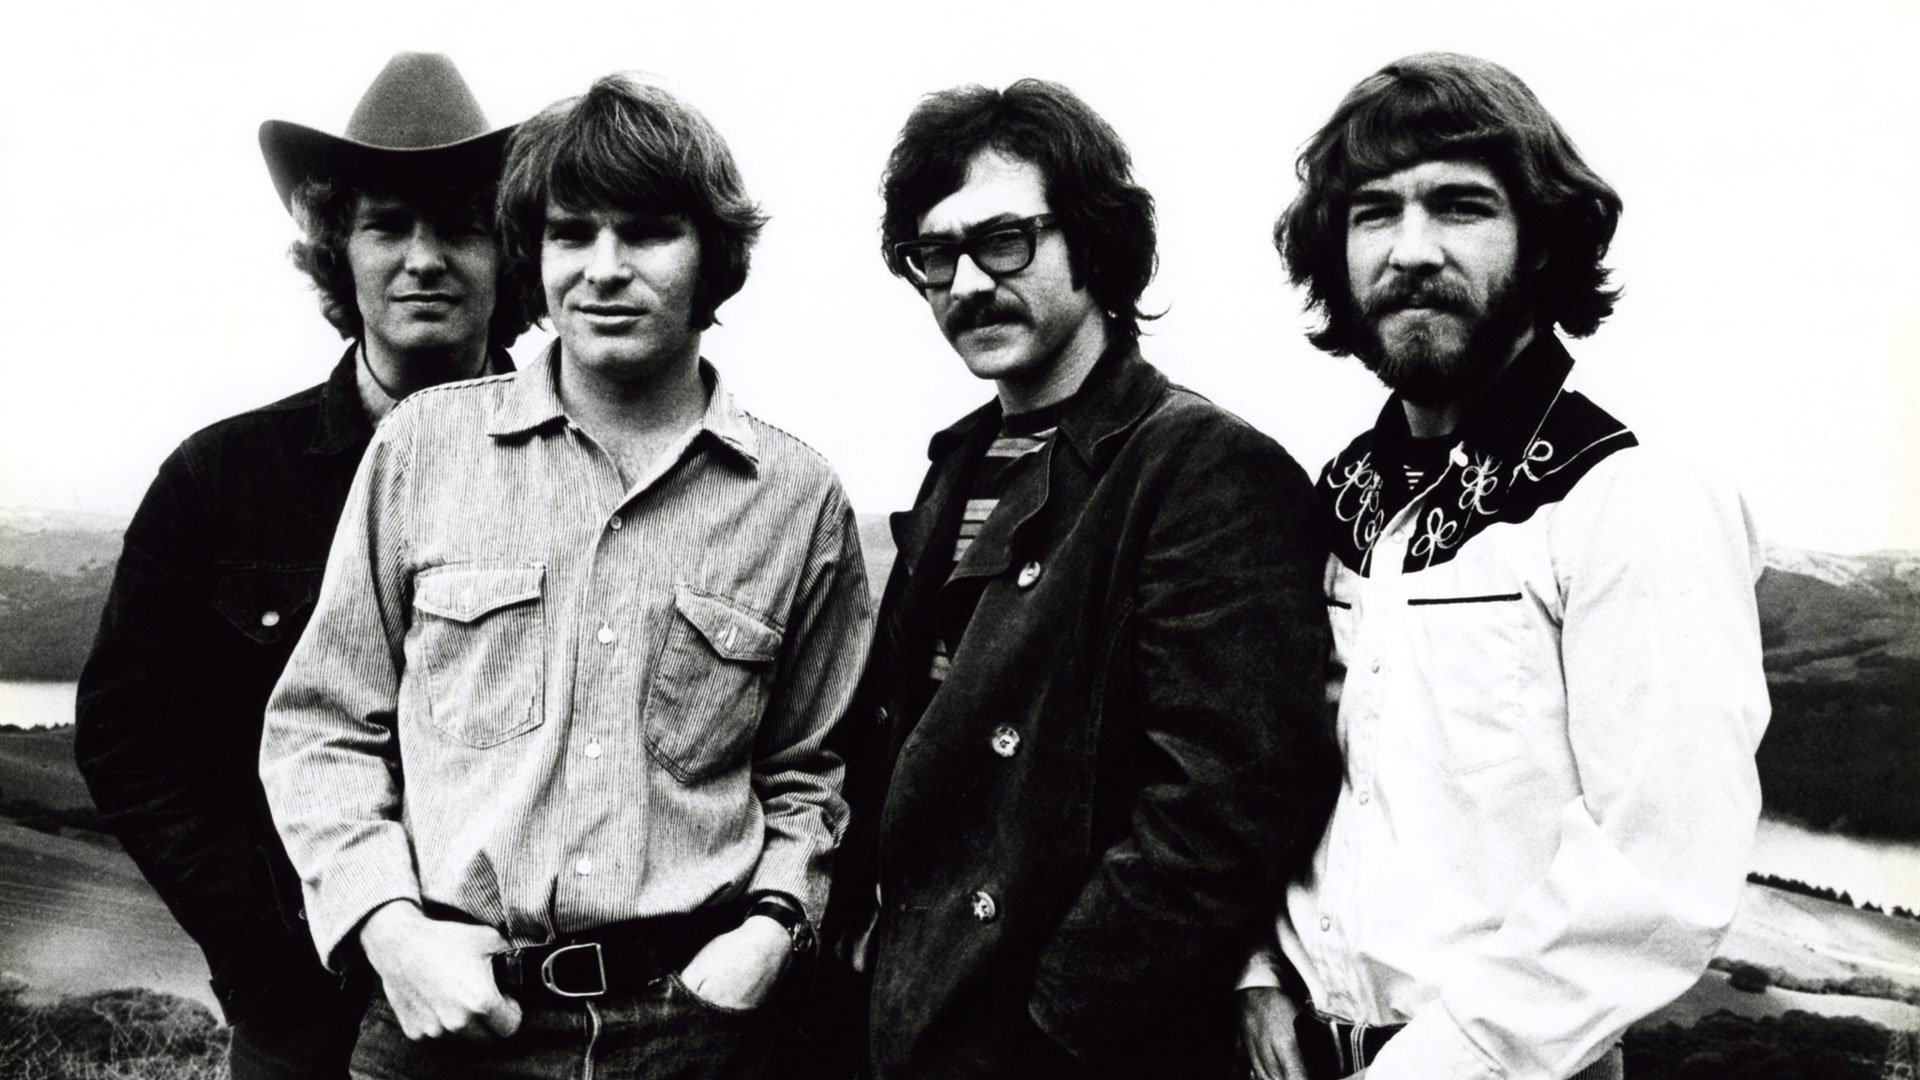 Music - Creedence Clearwater Revival band wallpaper.jpg